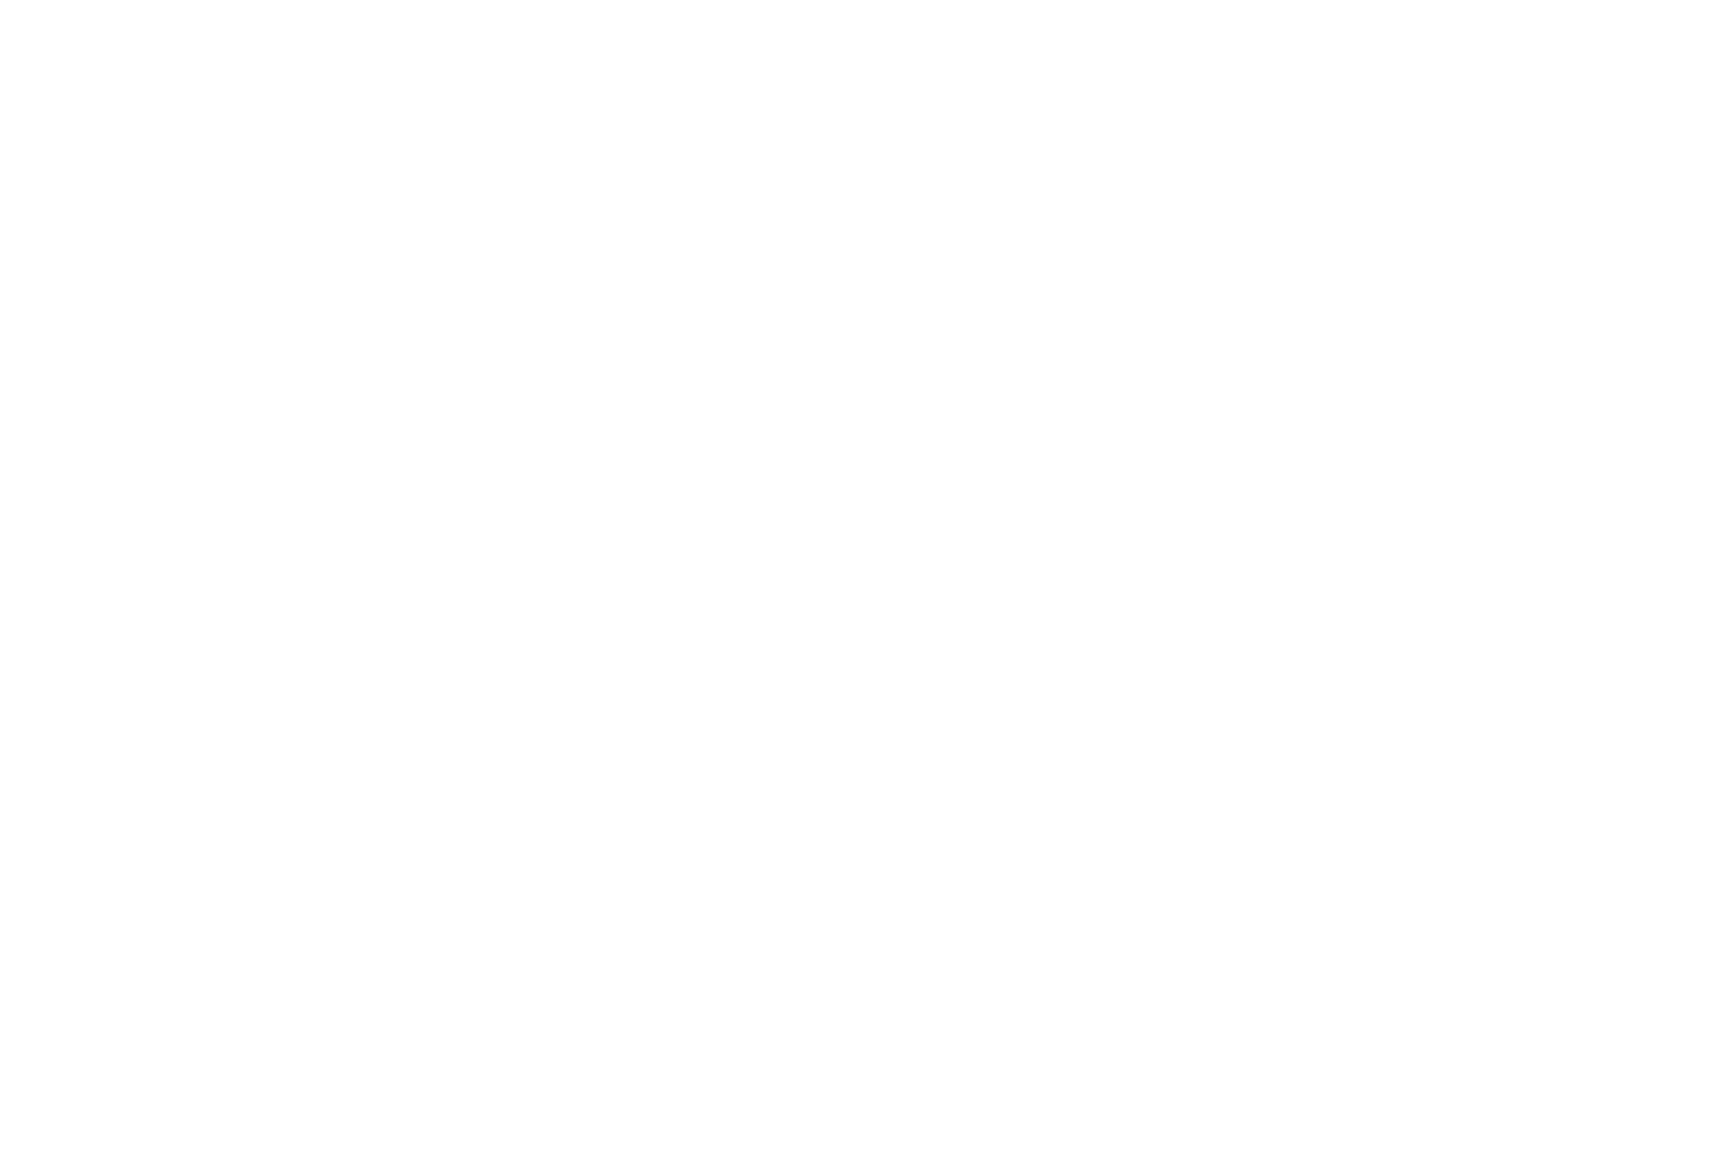 OFFICIAL SELECTION - Beverly Hills Film Festival - 2020